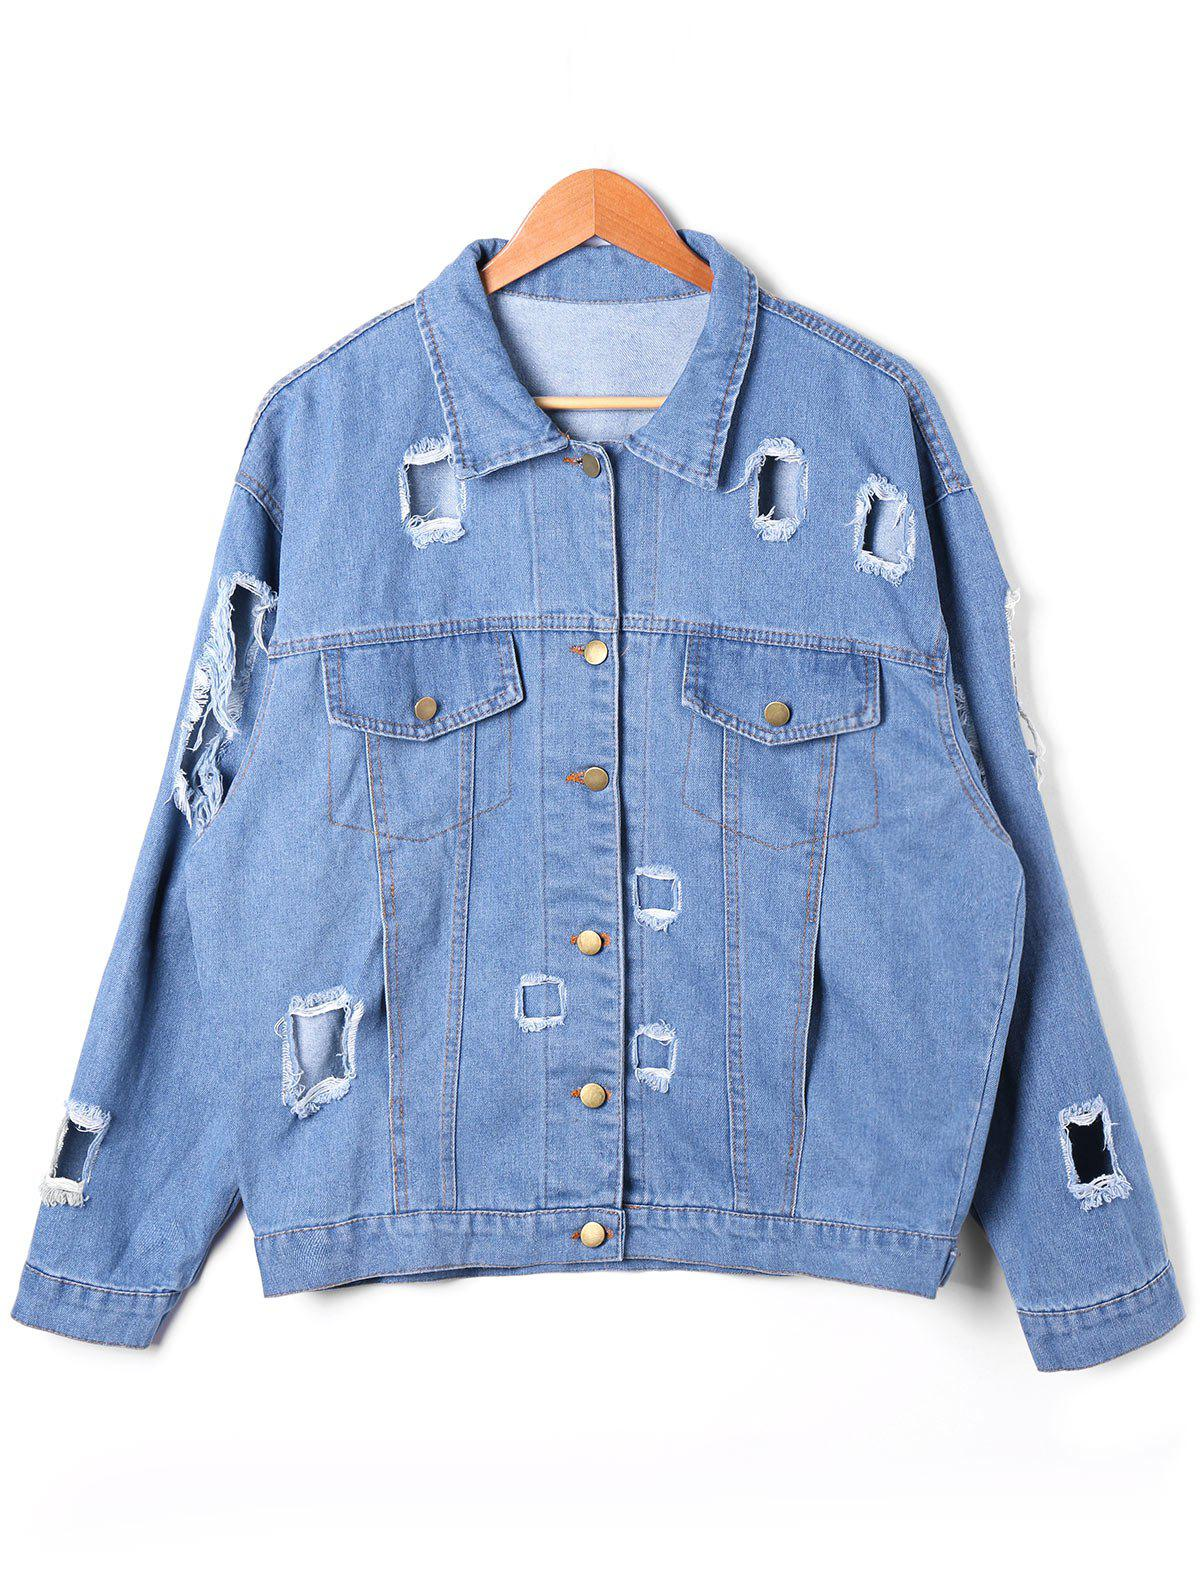 Flap Pockets Destroyed Denim Jacket - DENIM BLUE L